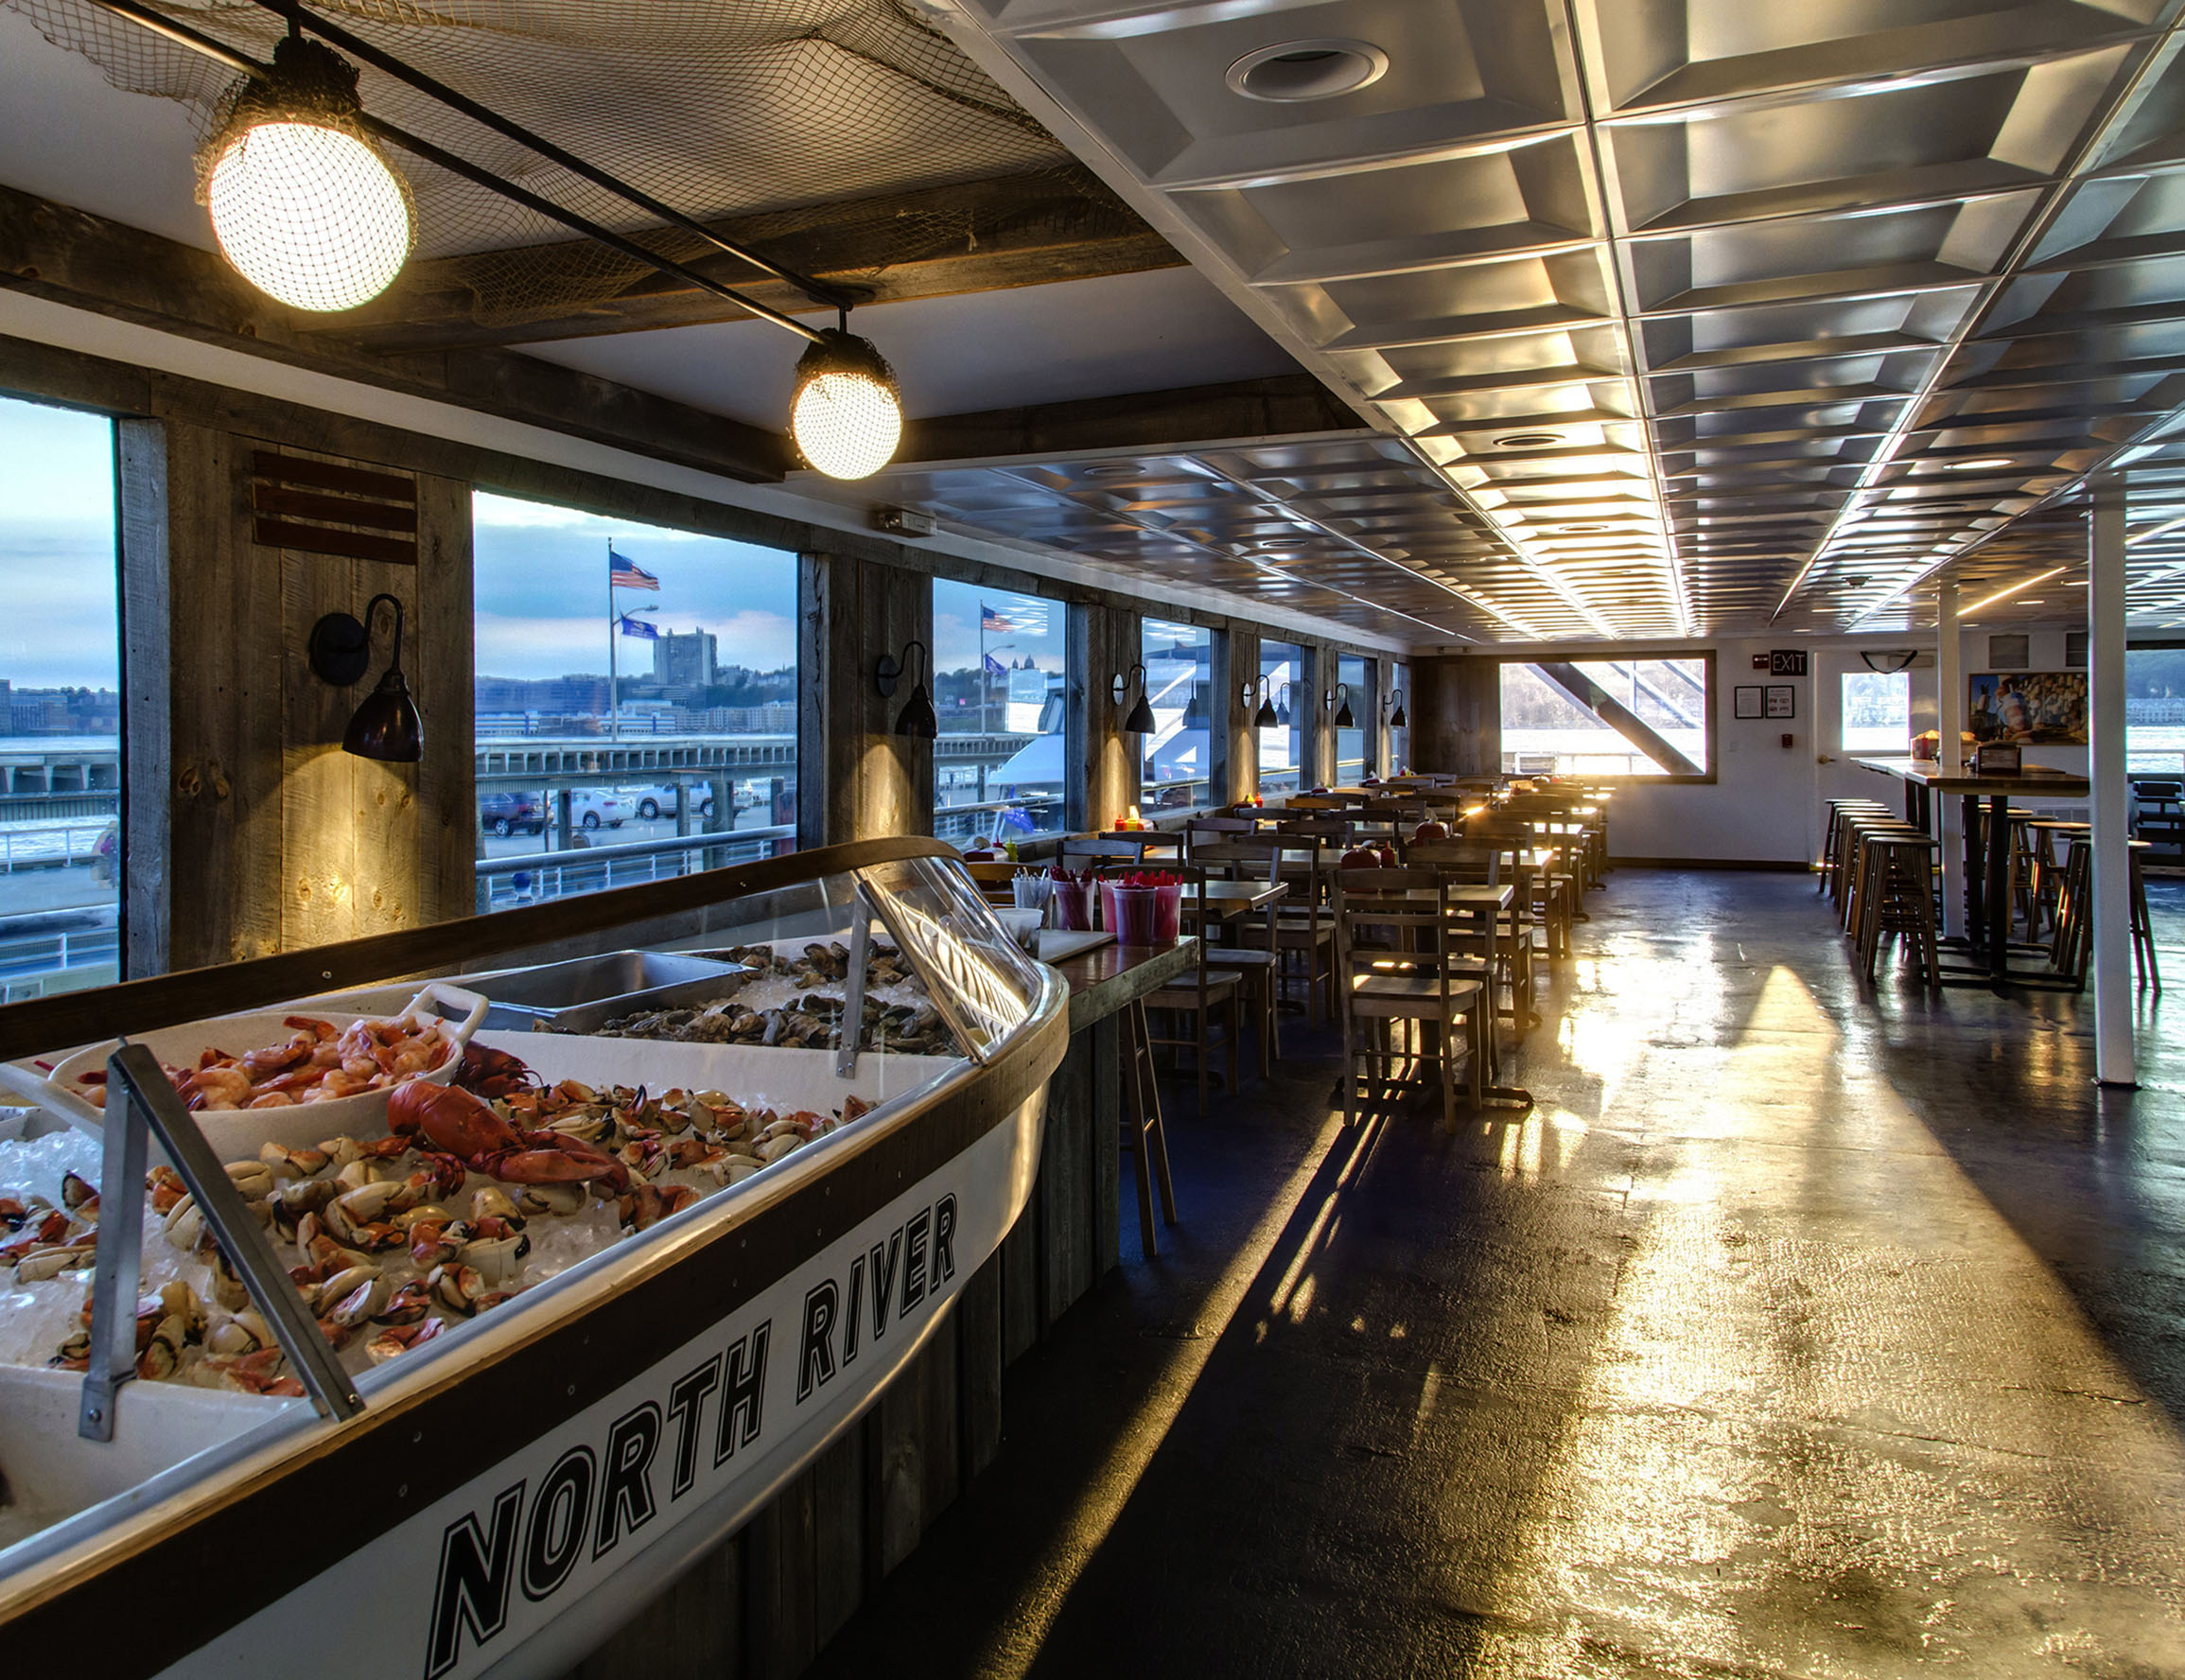 northriverlobsterco_05_sm